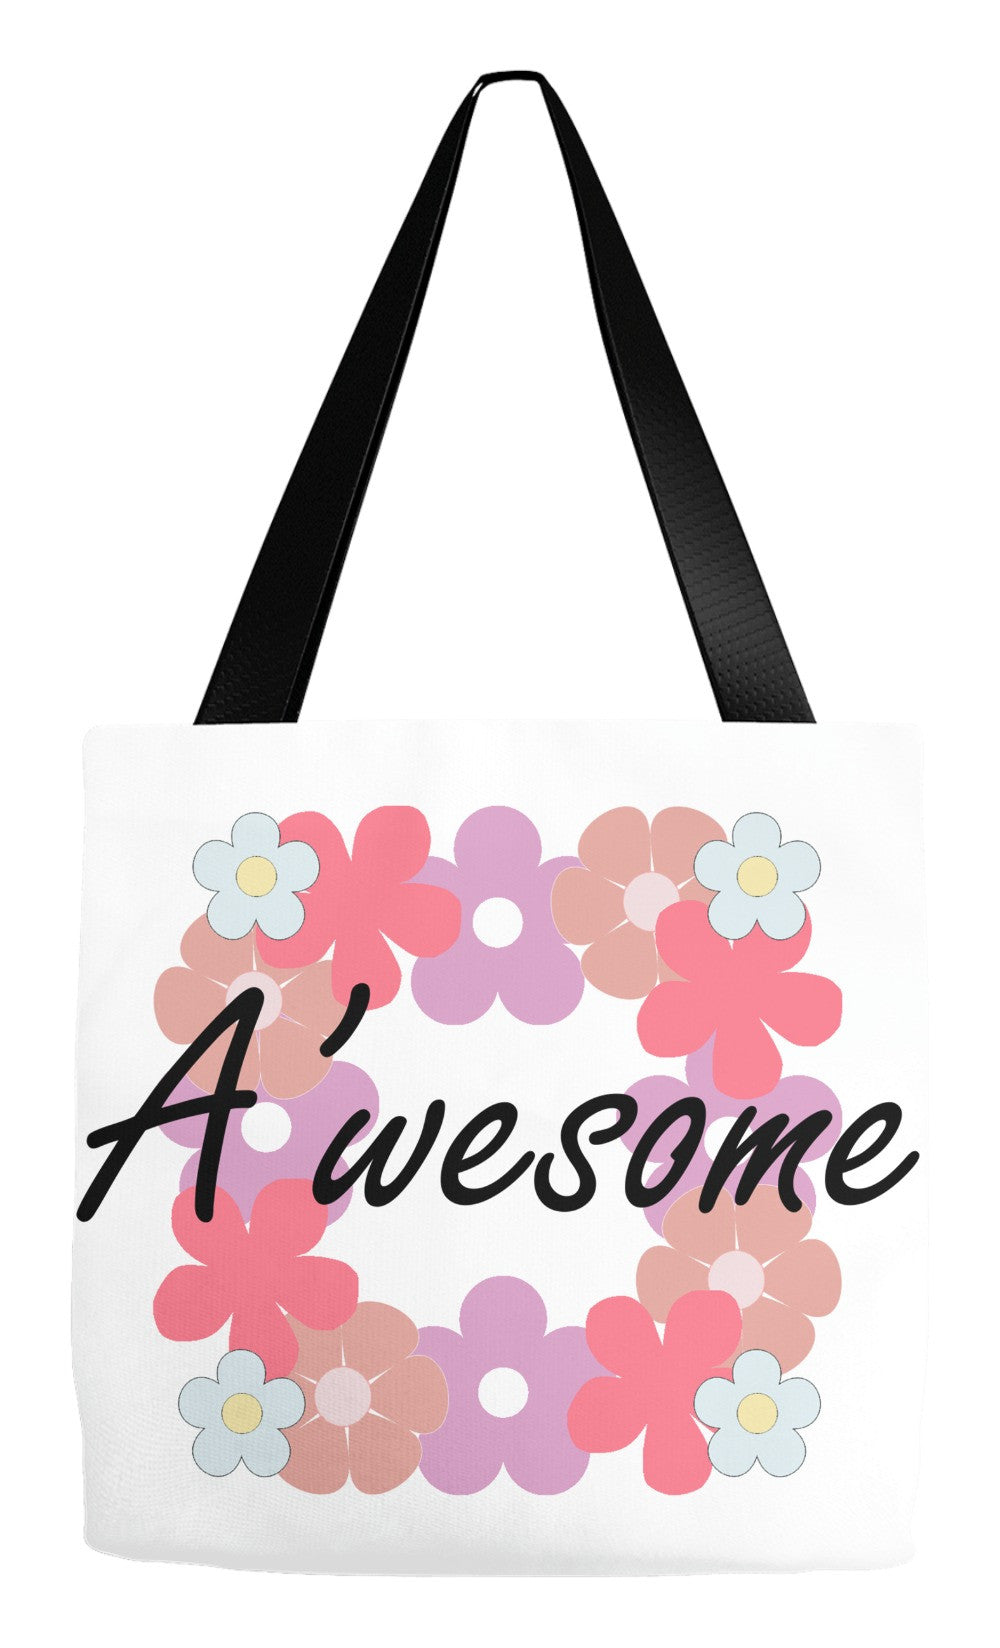 Hyuna A'wesome Tote Bag